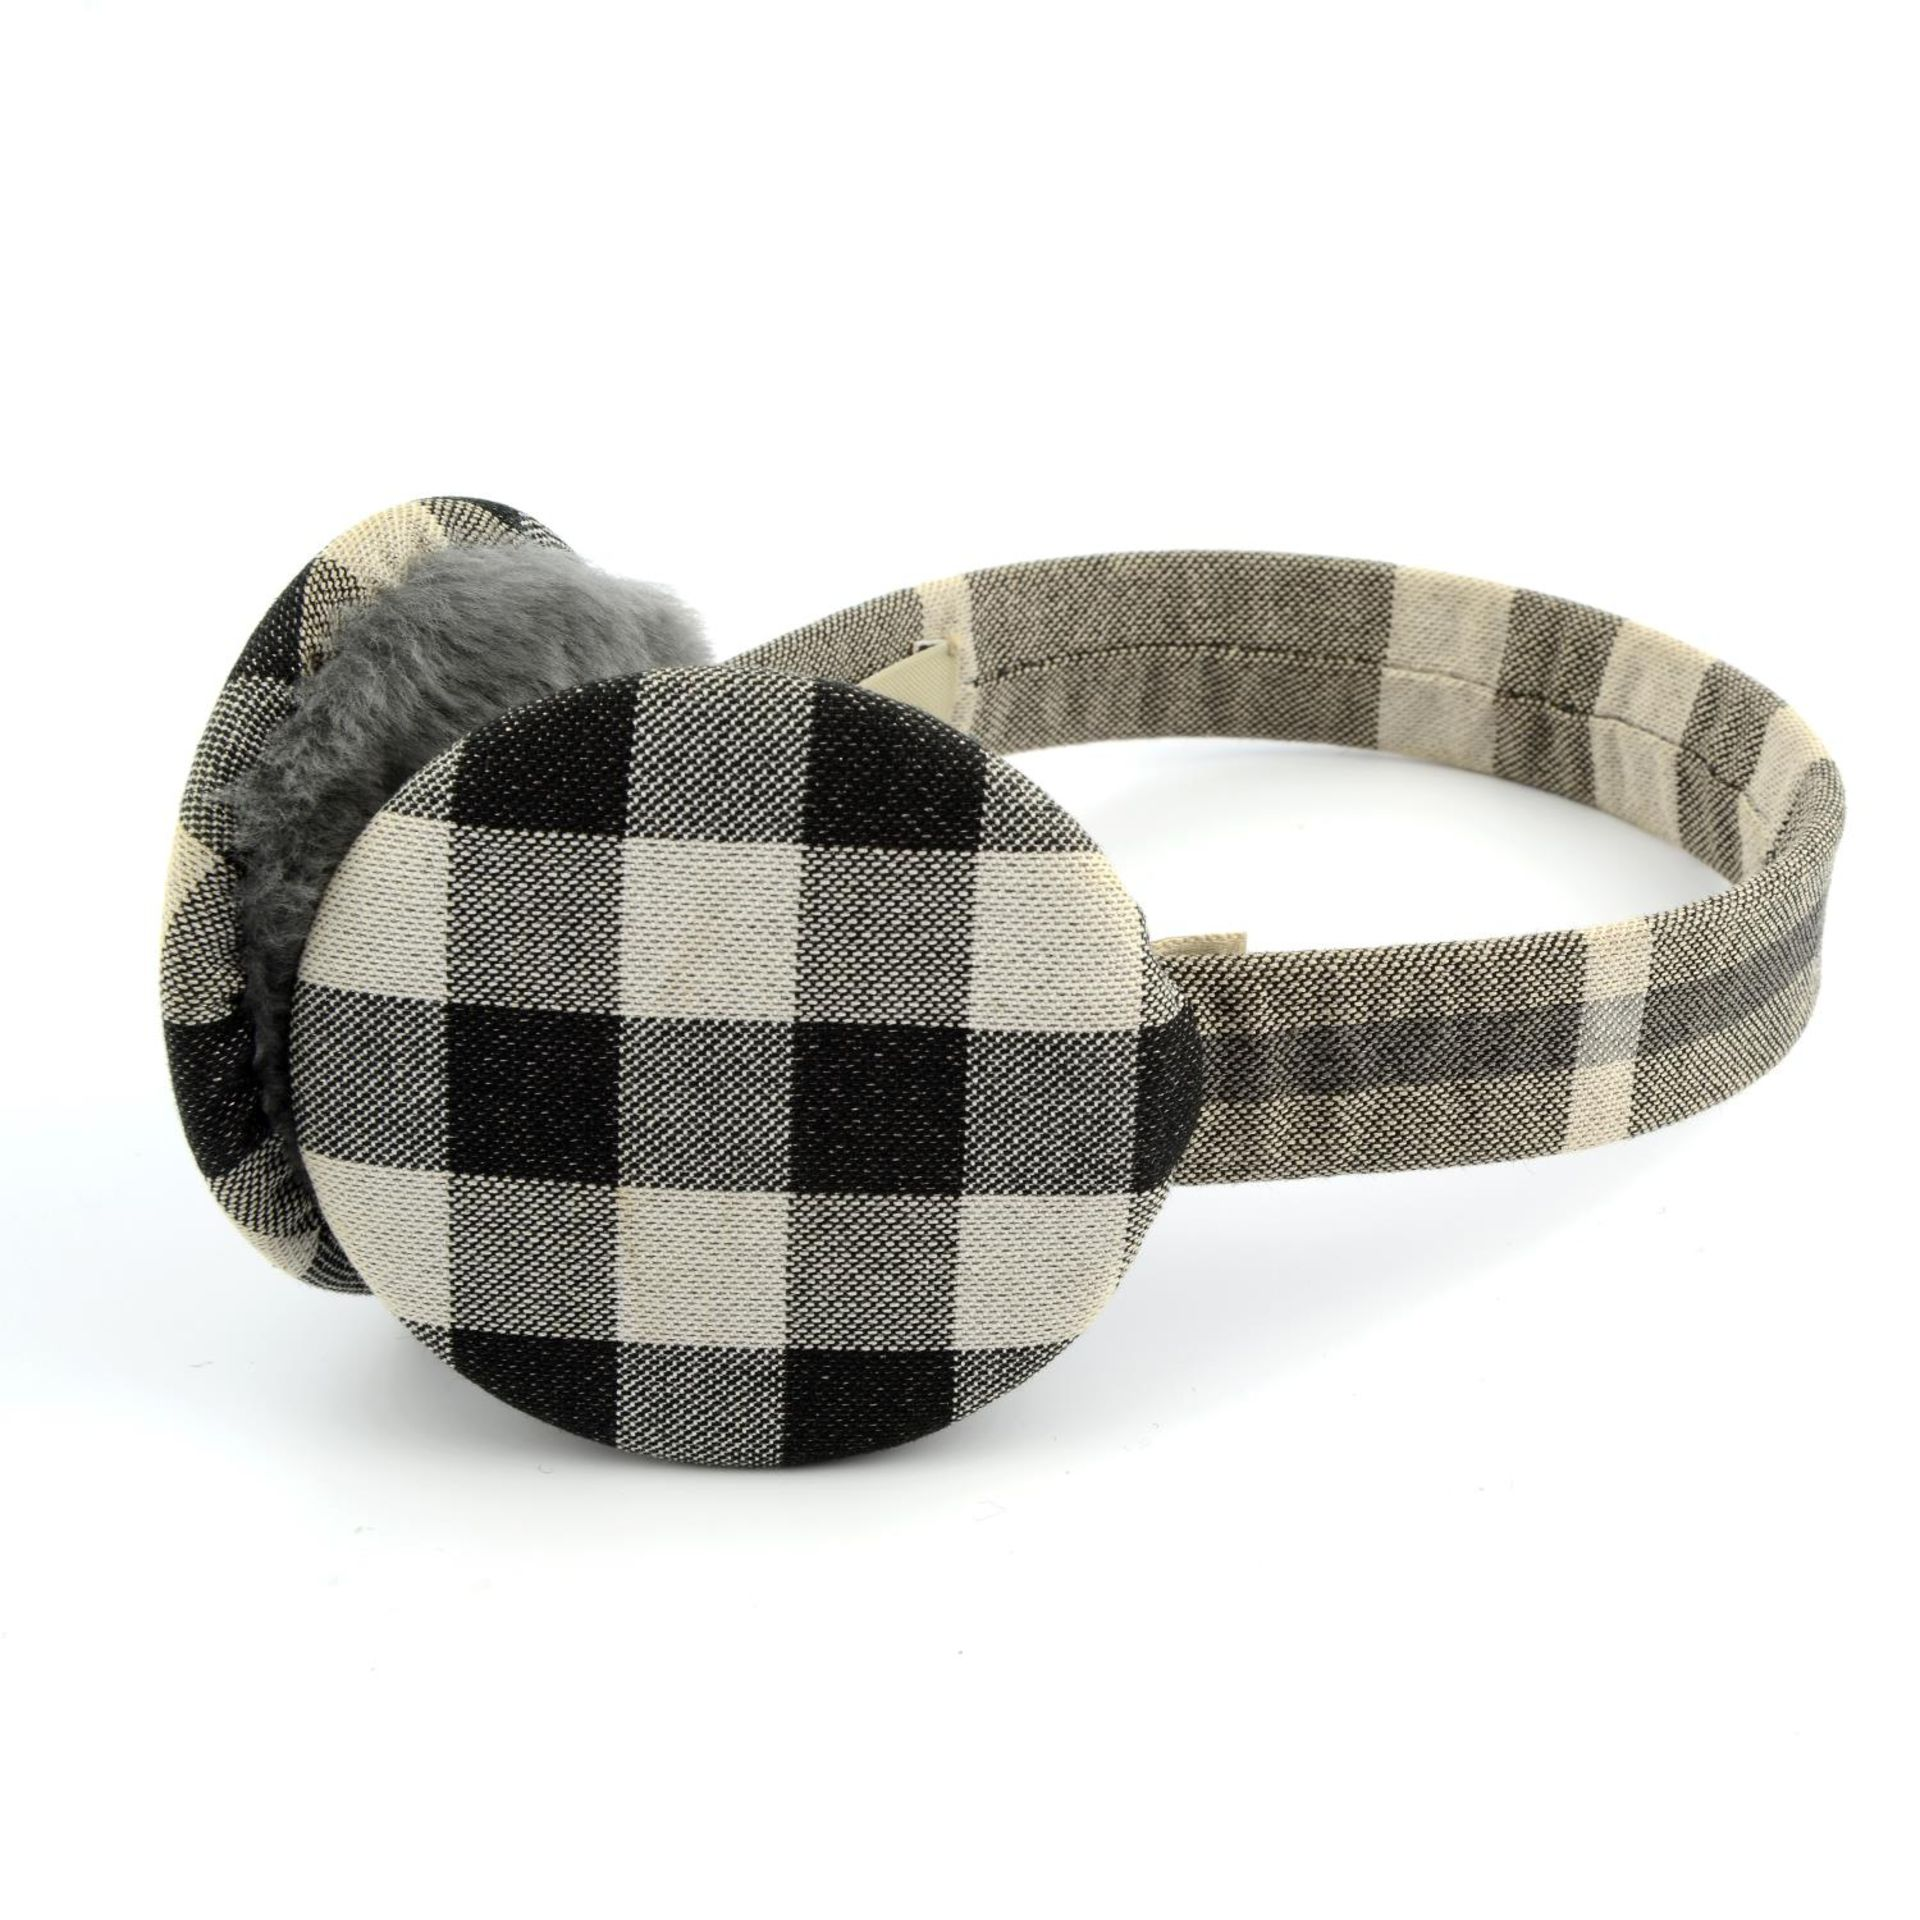 BURBERRY - a pair of ear muffs. - Image 4 of 4